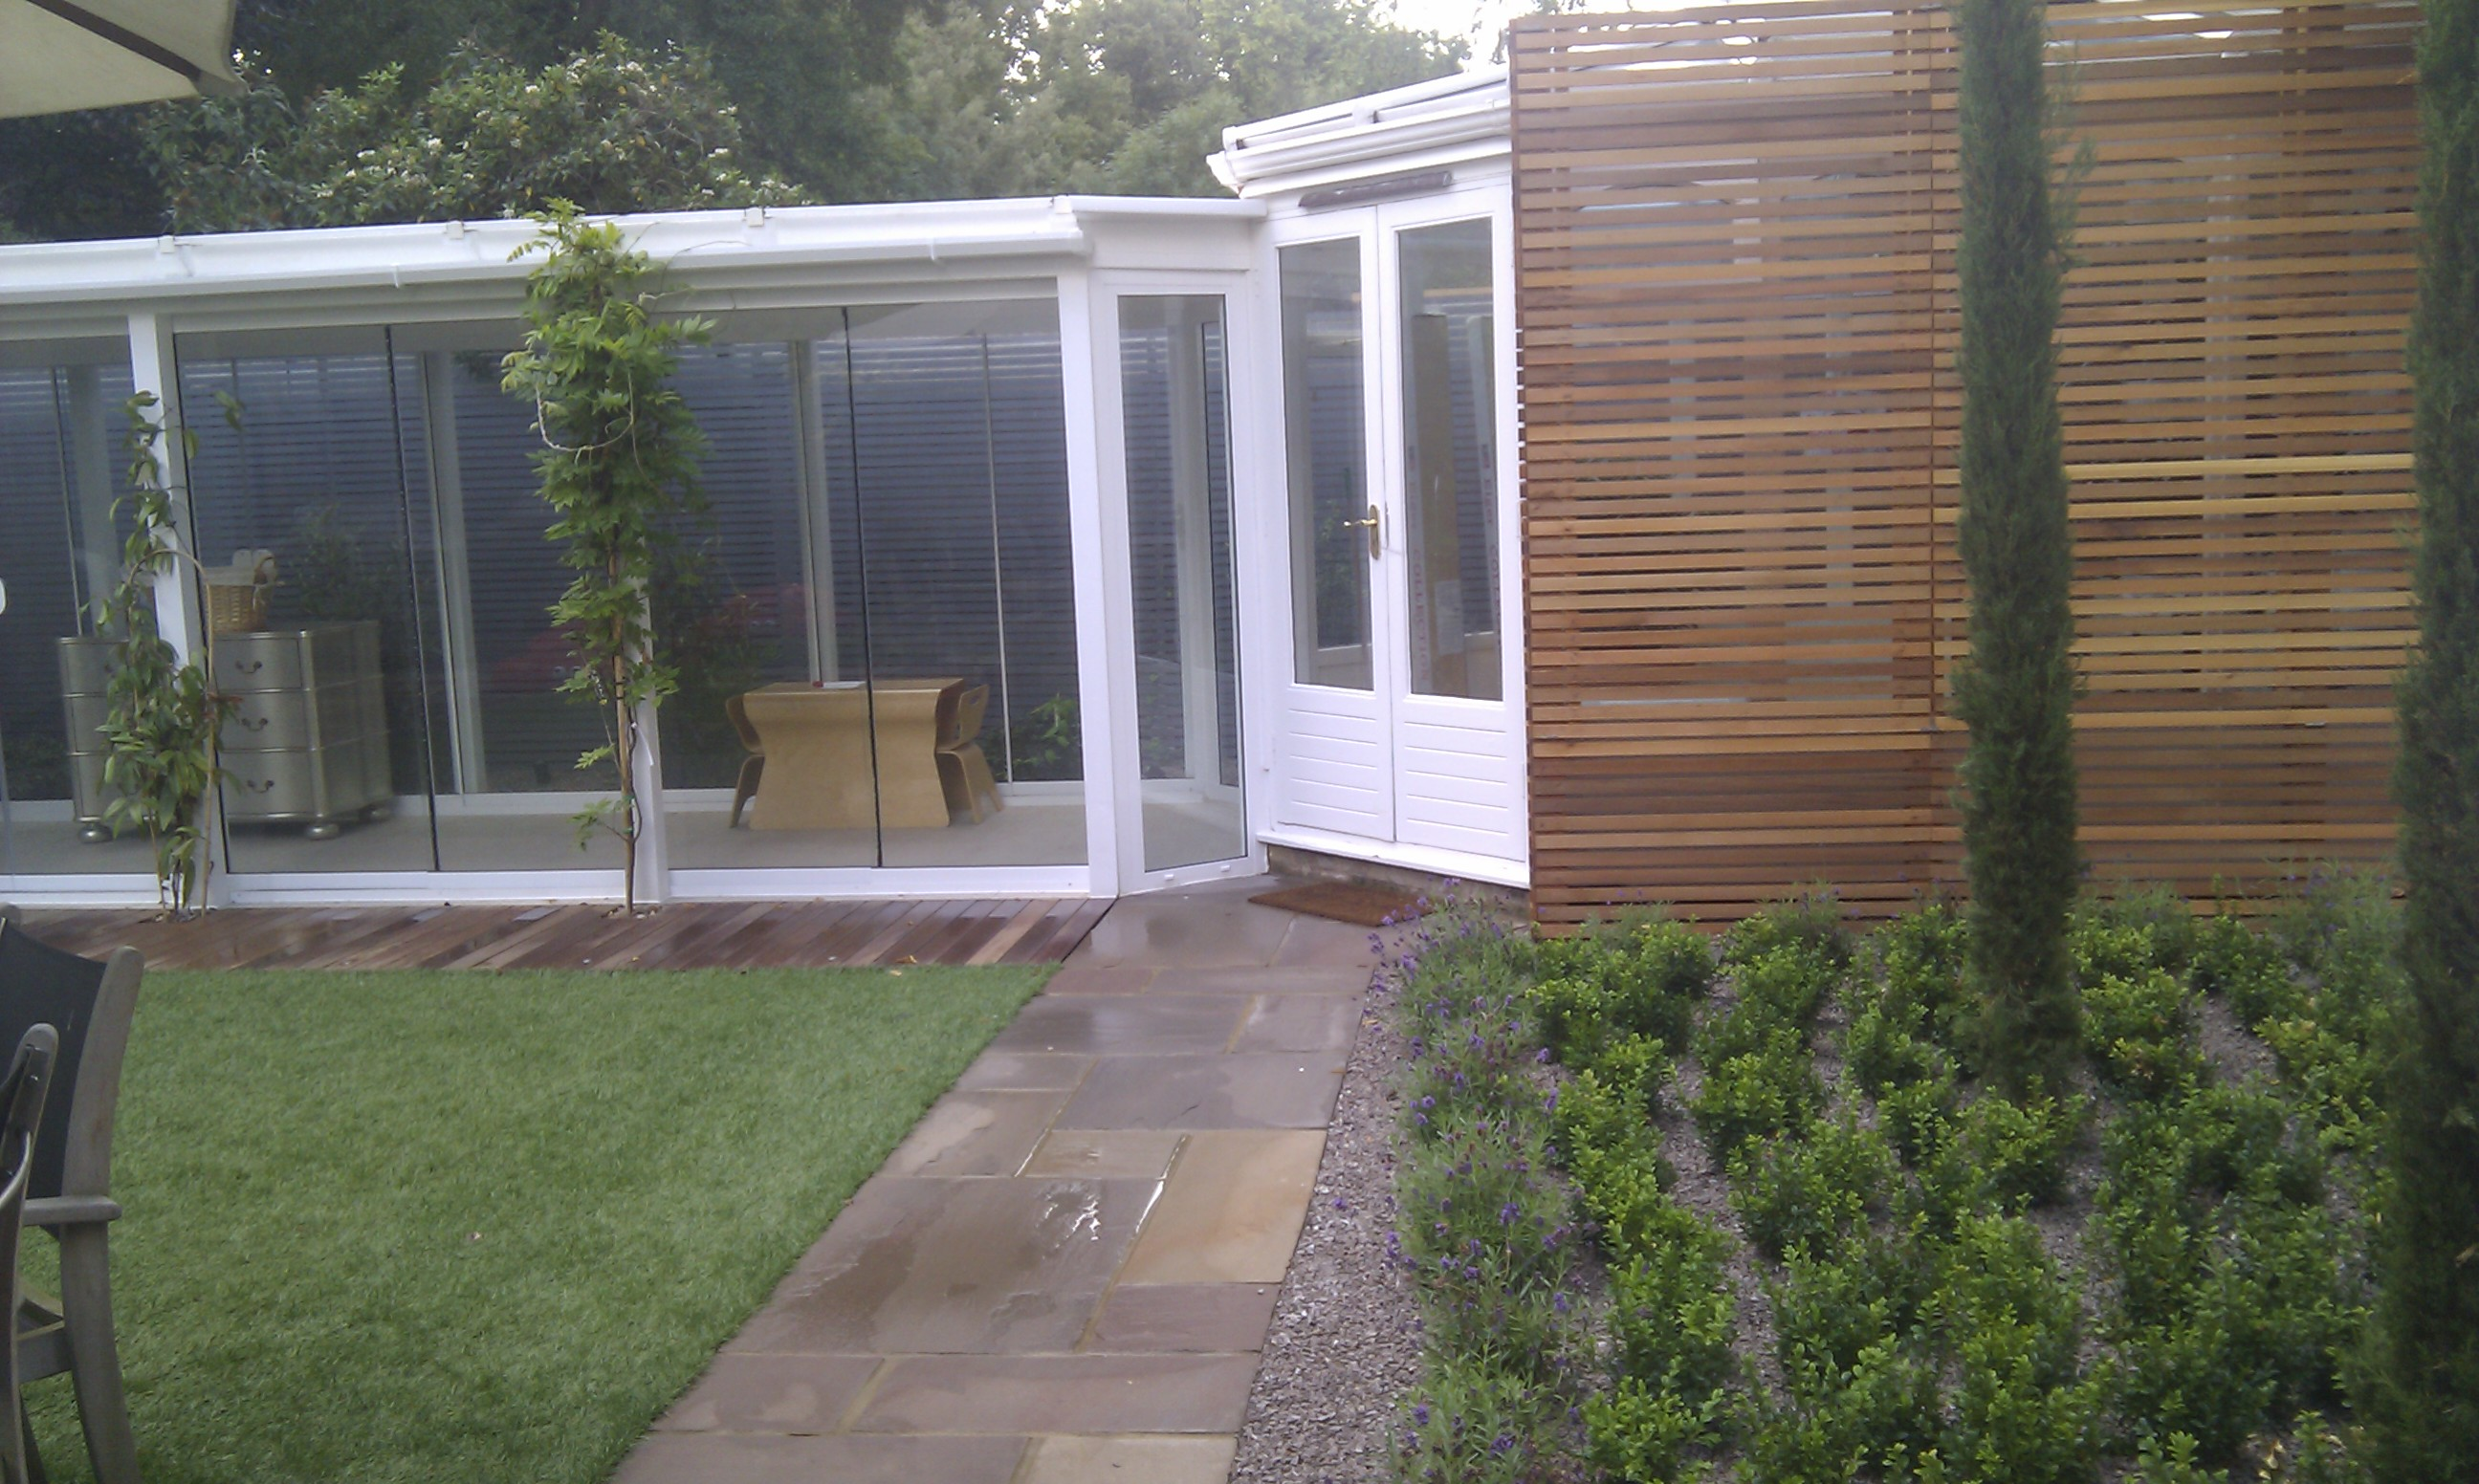 sandstone-paving-cedar-trellis-balau-decking-london-patio-and-paving.jpg